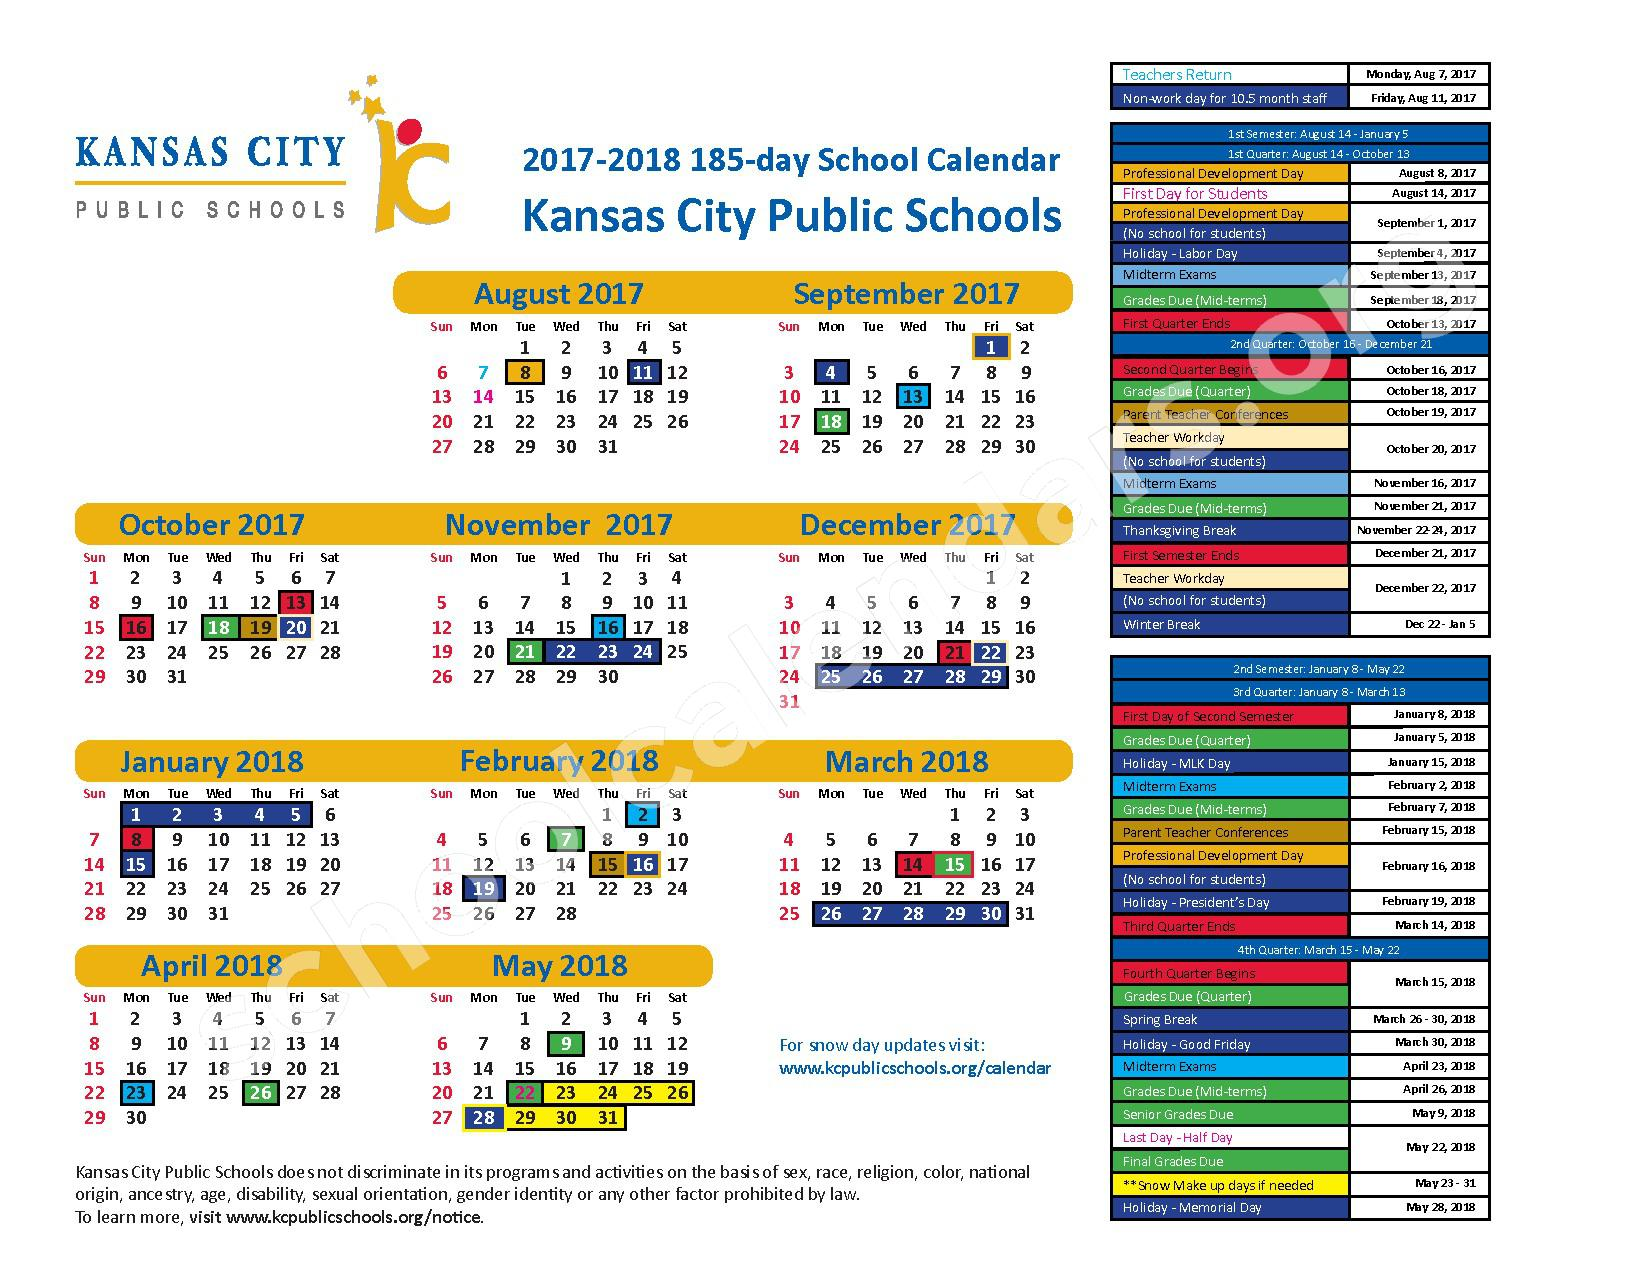 2017 - 2018 KCPS 185-day Calendar – Kansas City Public Schools – page 1